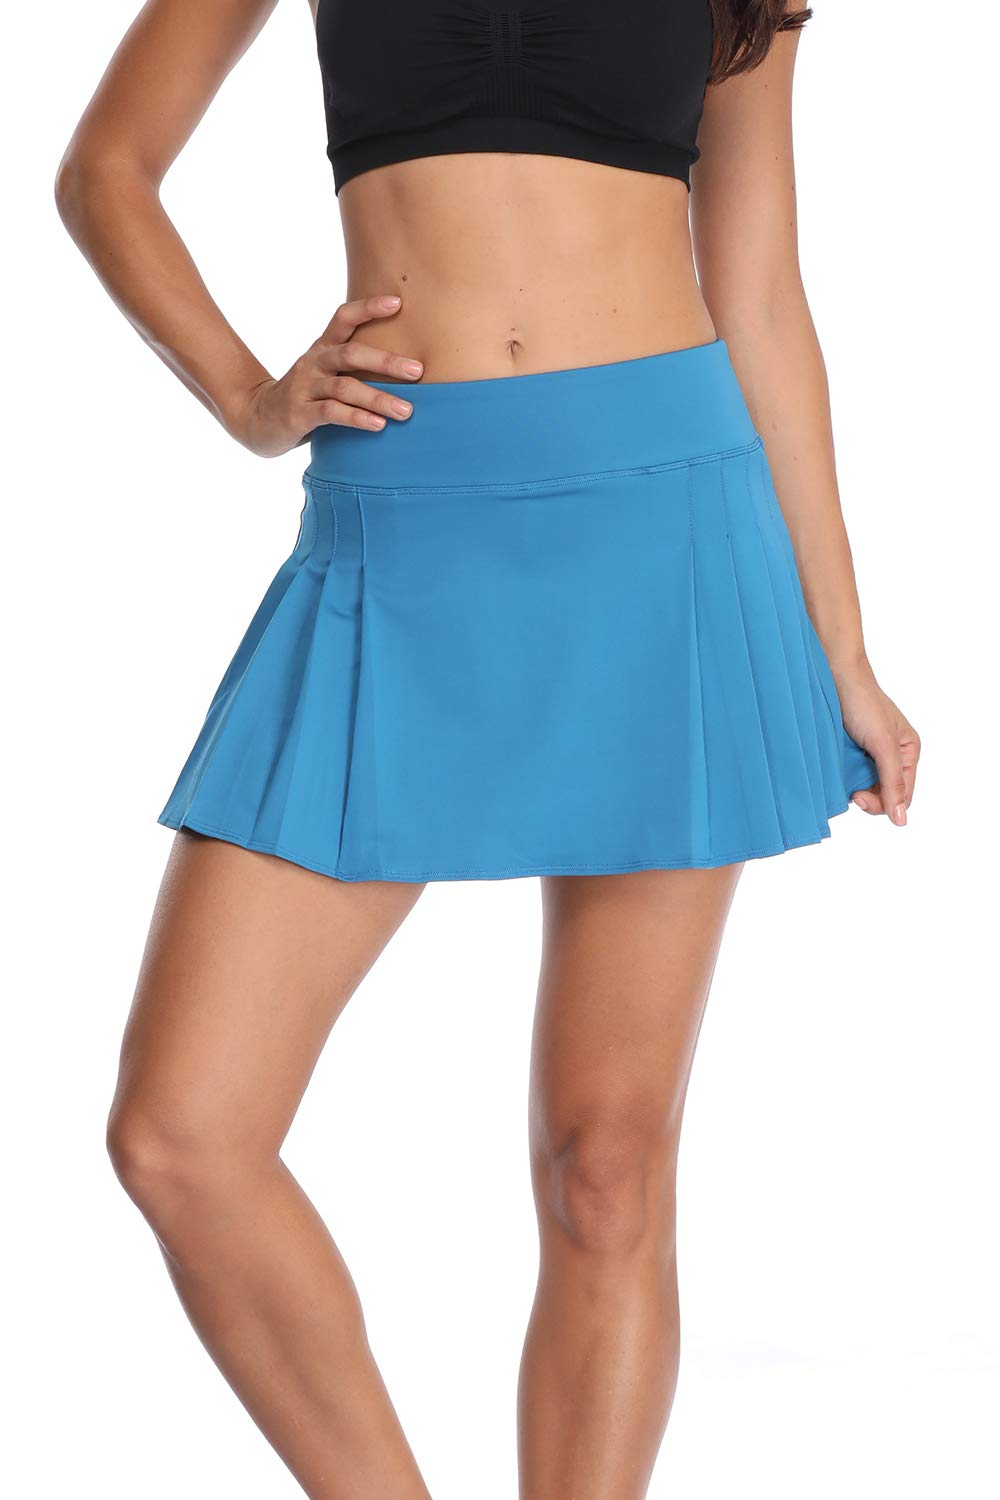 32e-SANERYI Women's Pleated Elastic Quick-Drying Tennis Skirt with Shorts Running Skort-13M Blue by 32e-SANERYI